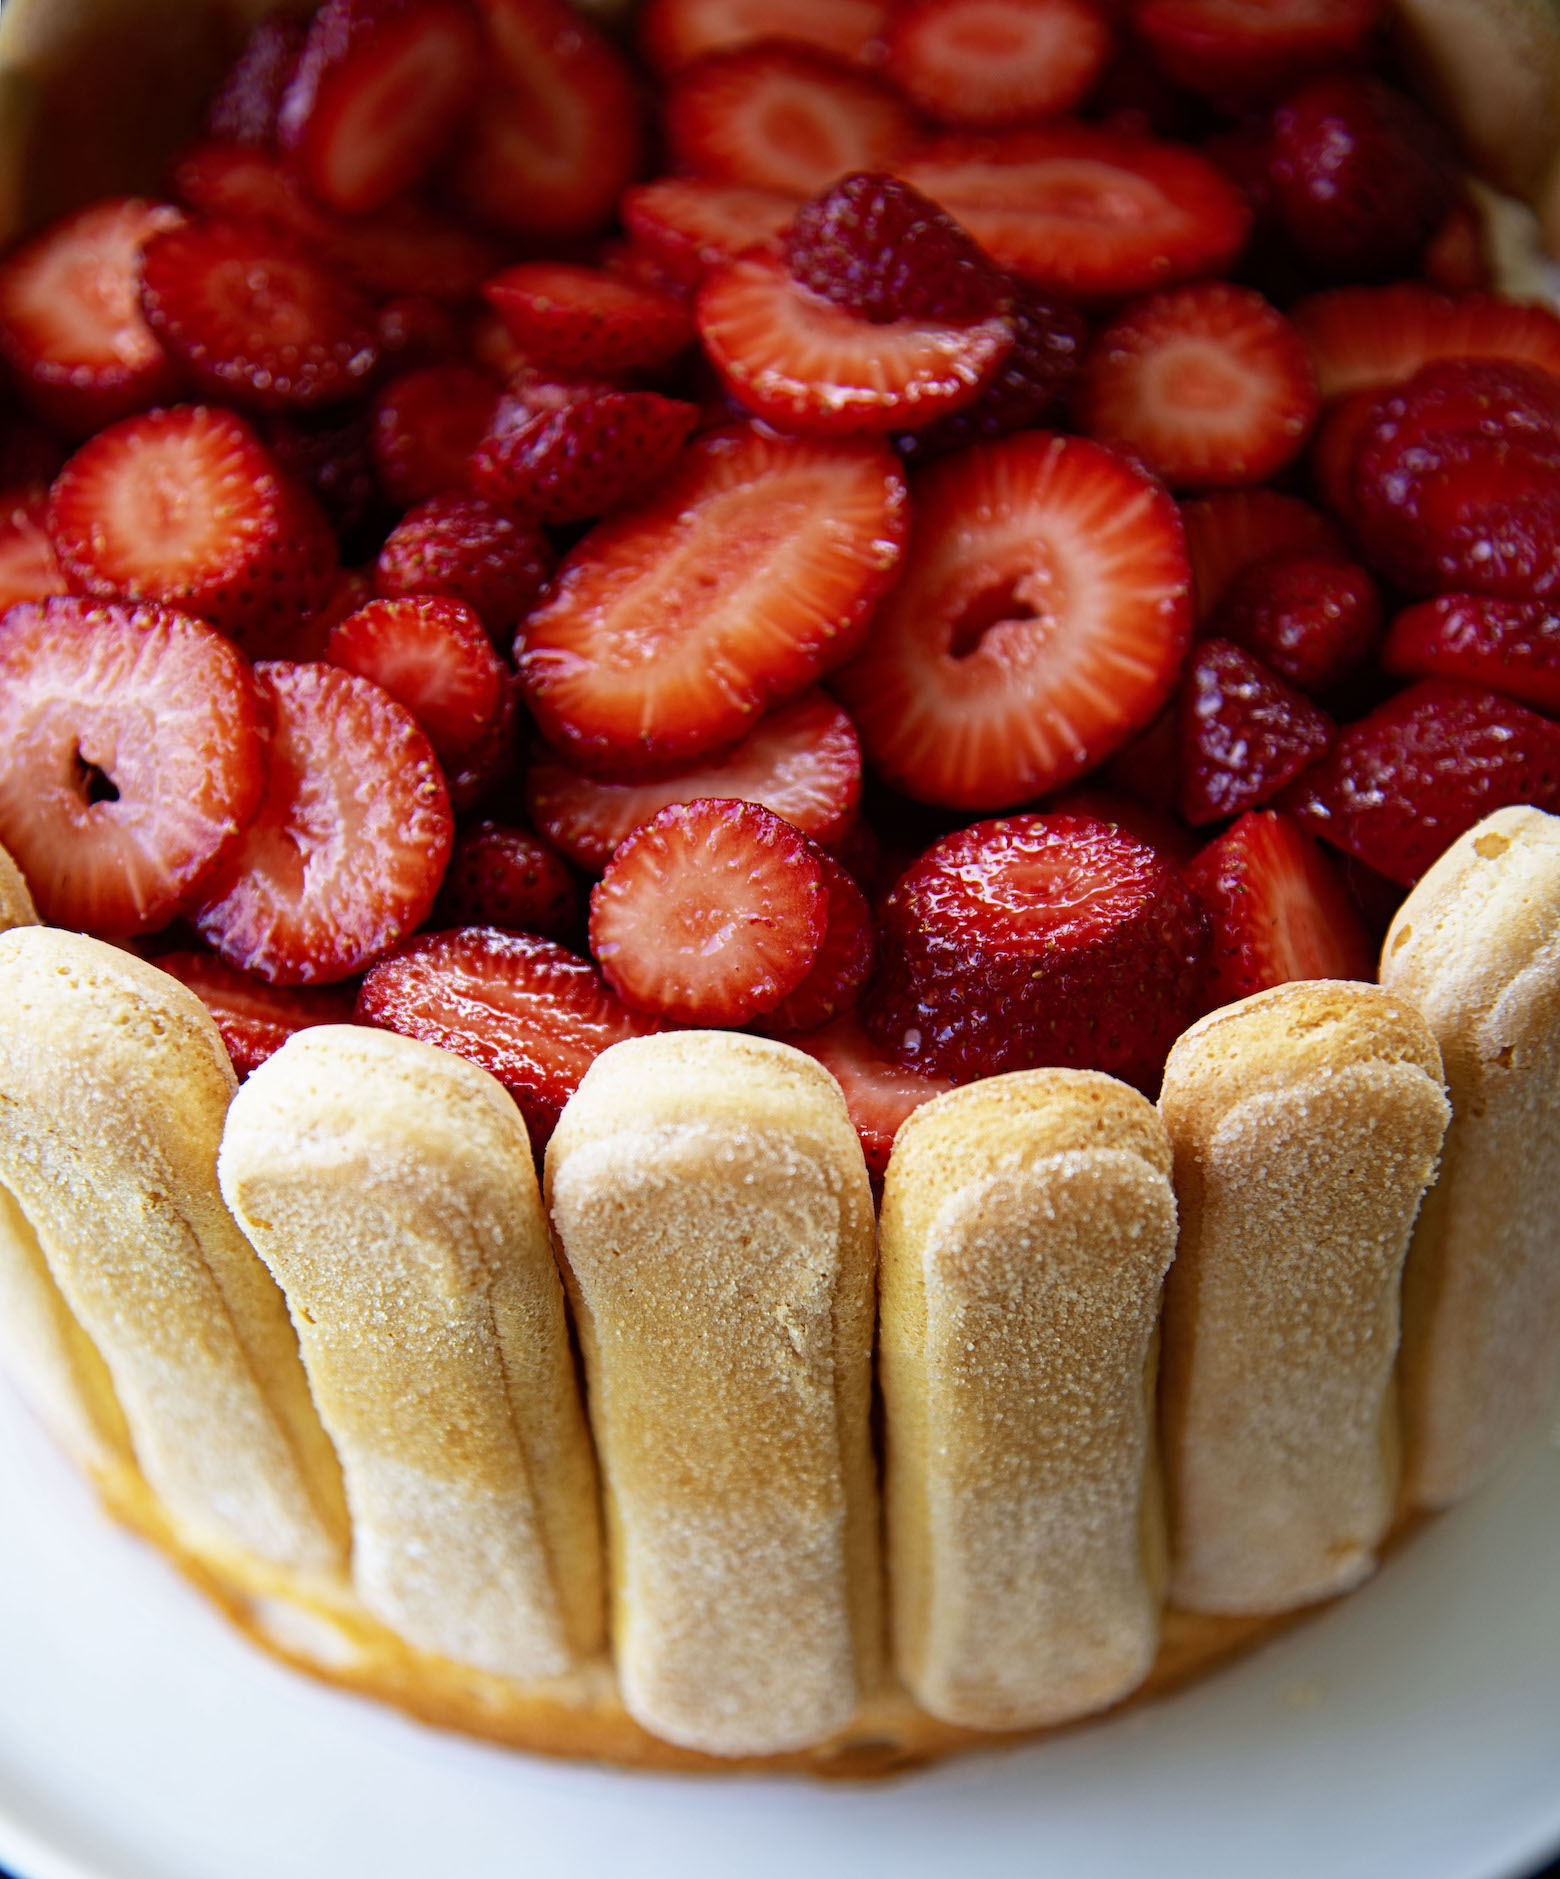 Overview of fresh strawberries on cake.